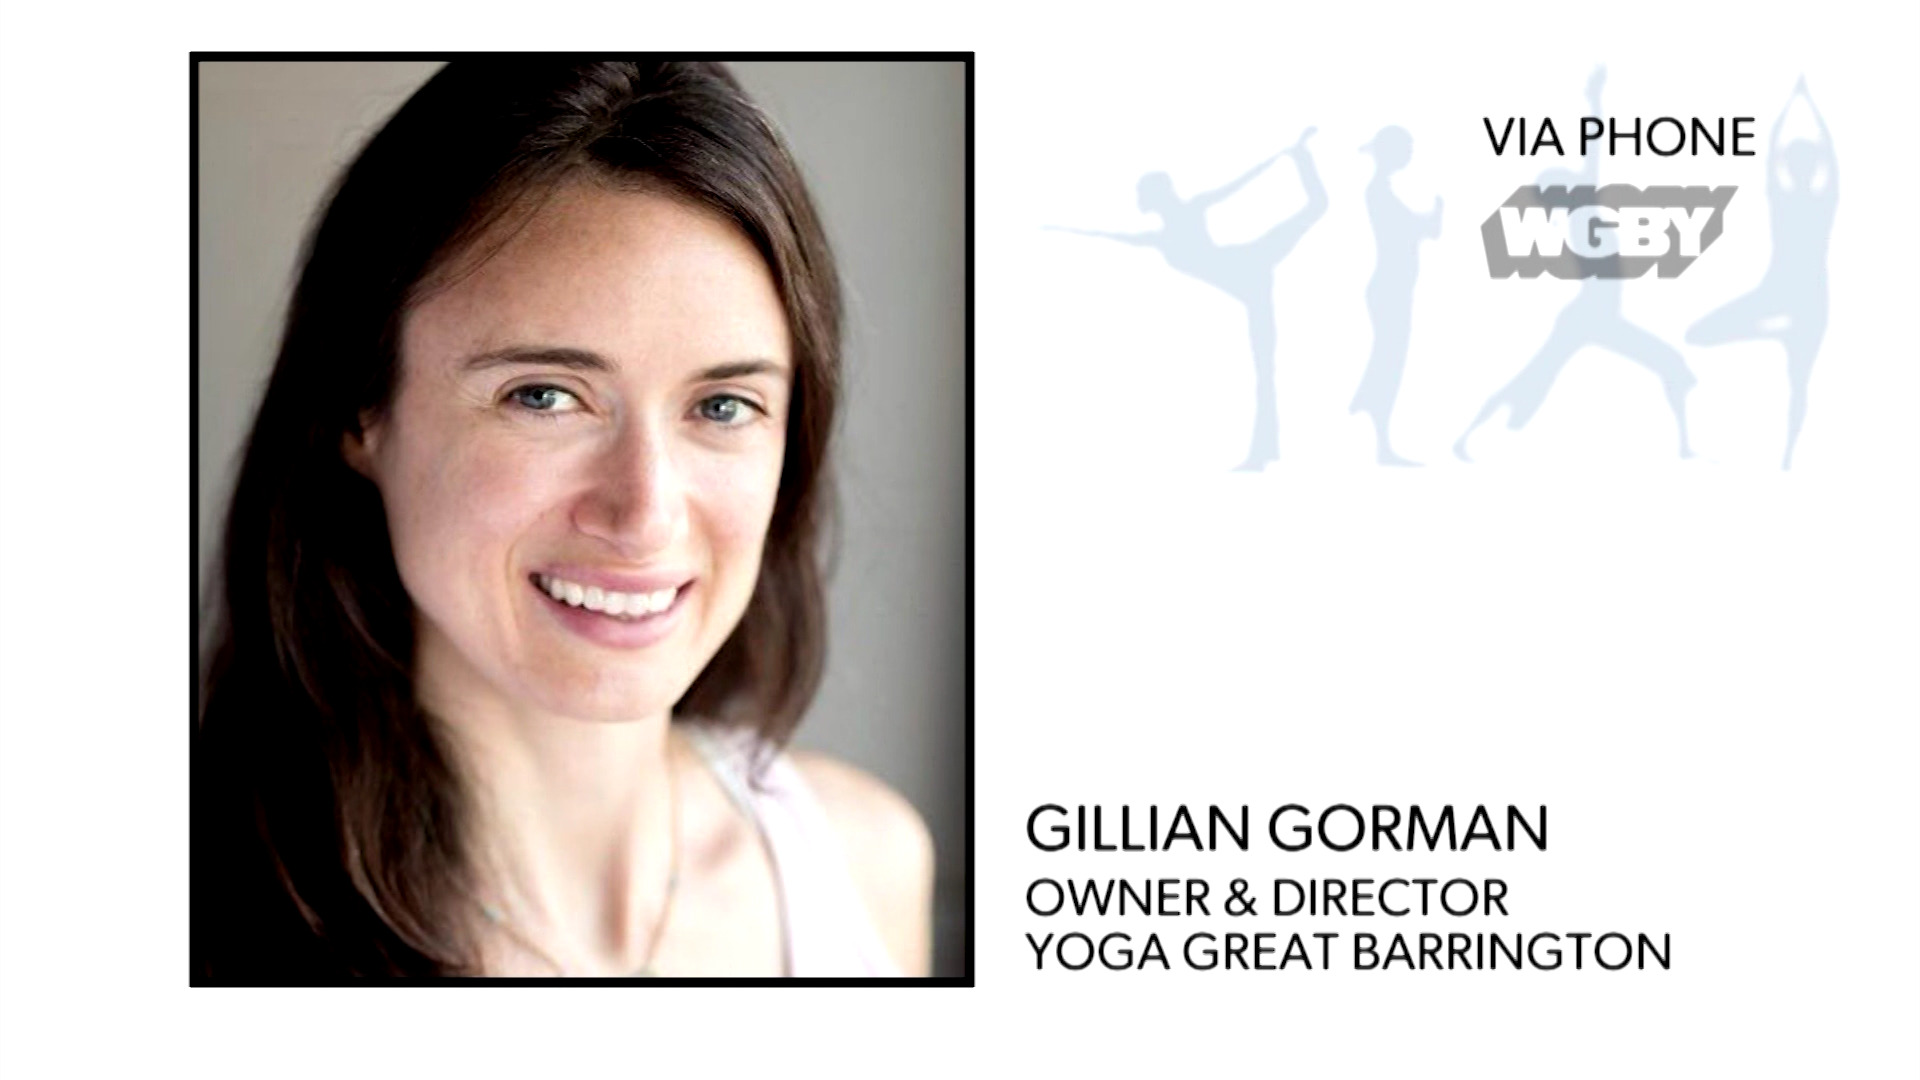 WATCH: Yoga of Great Barrington's Gillian Gorman shares some simple stress relievers and meditation methods to help you relax during this uncertain time.